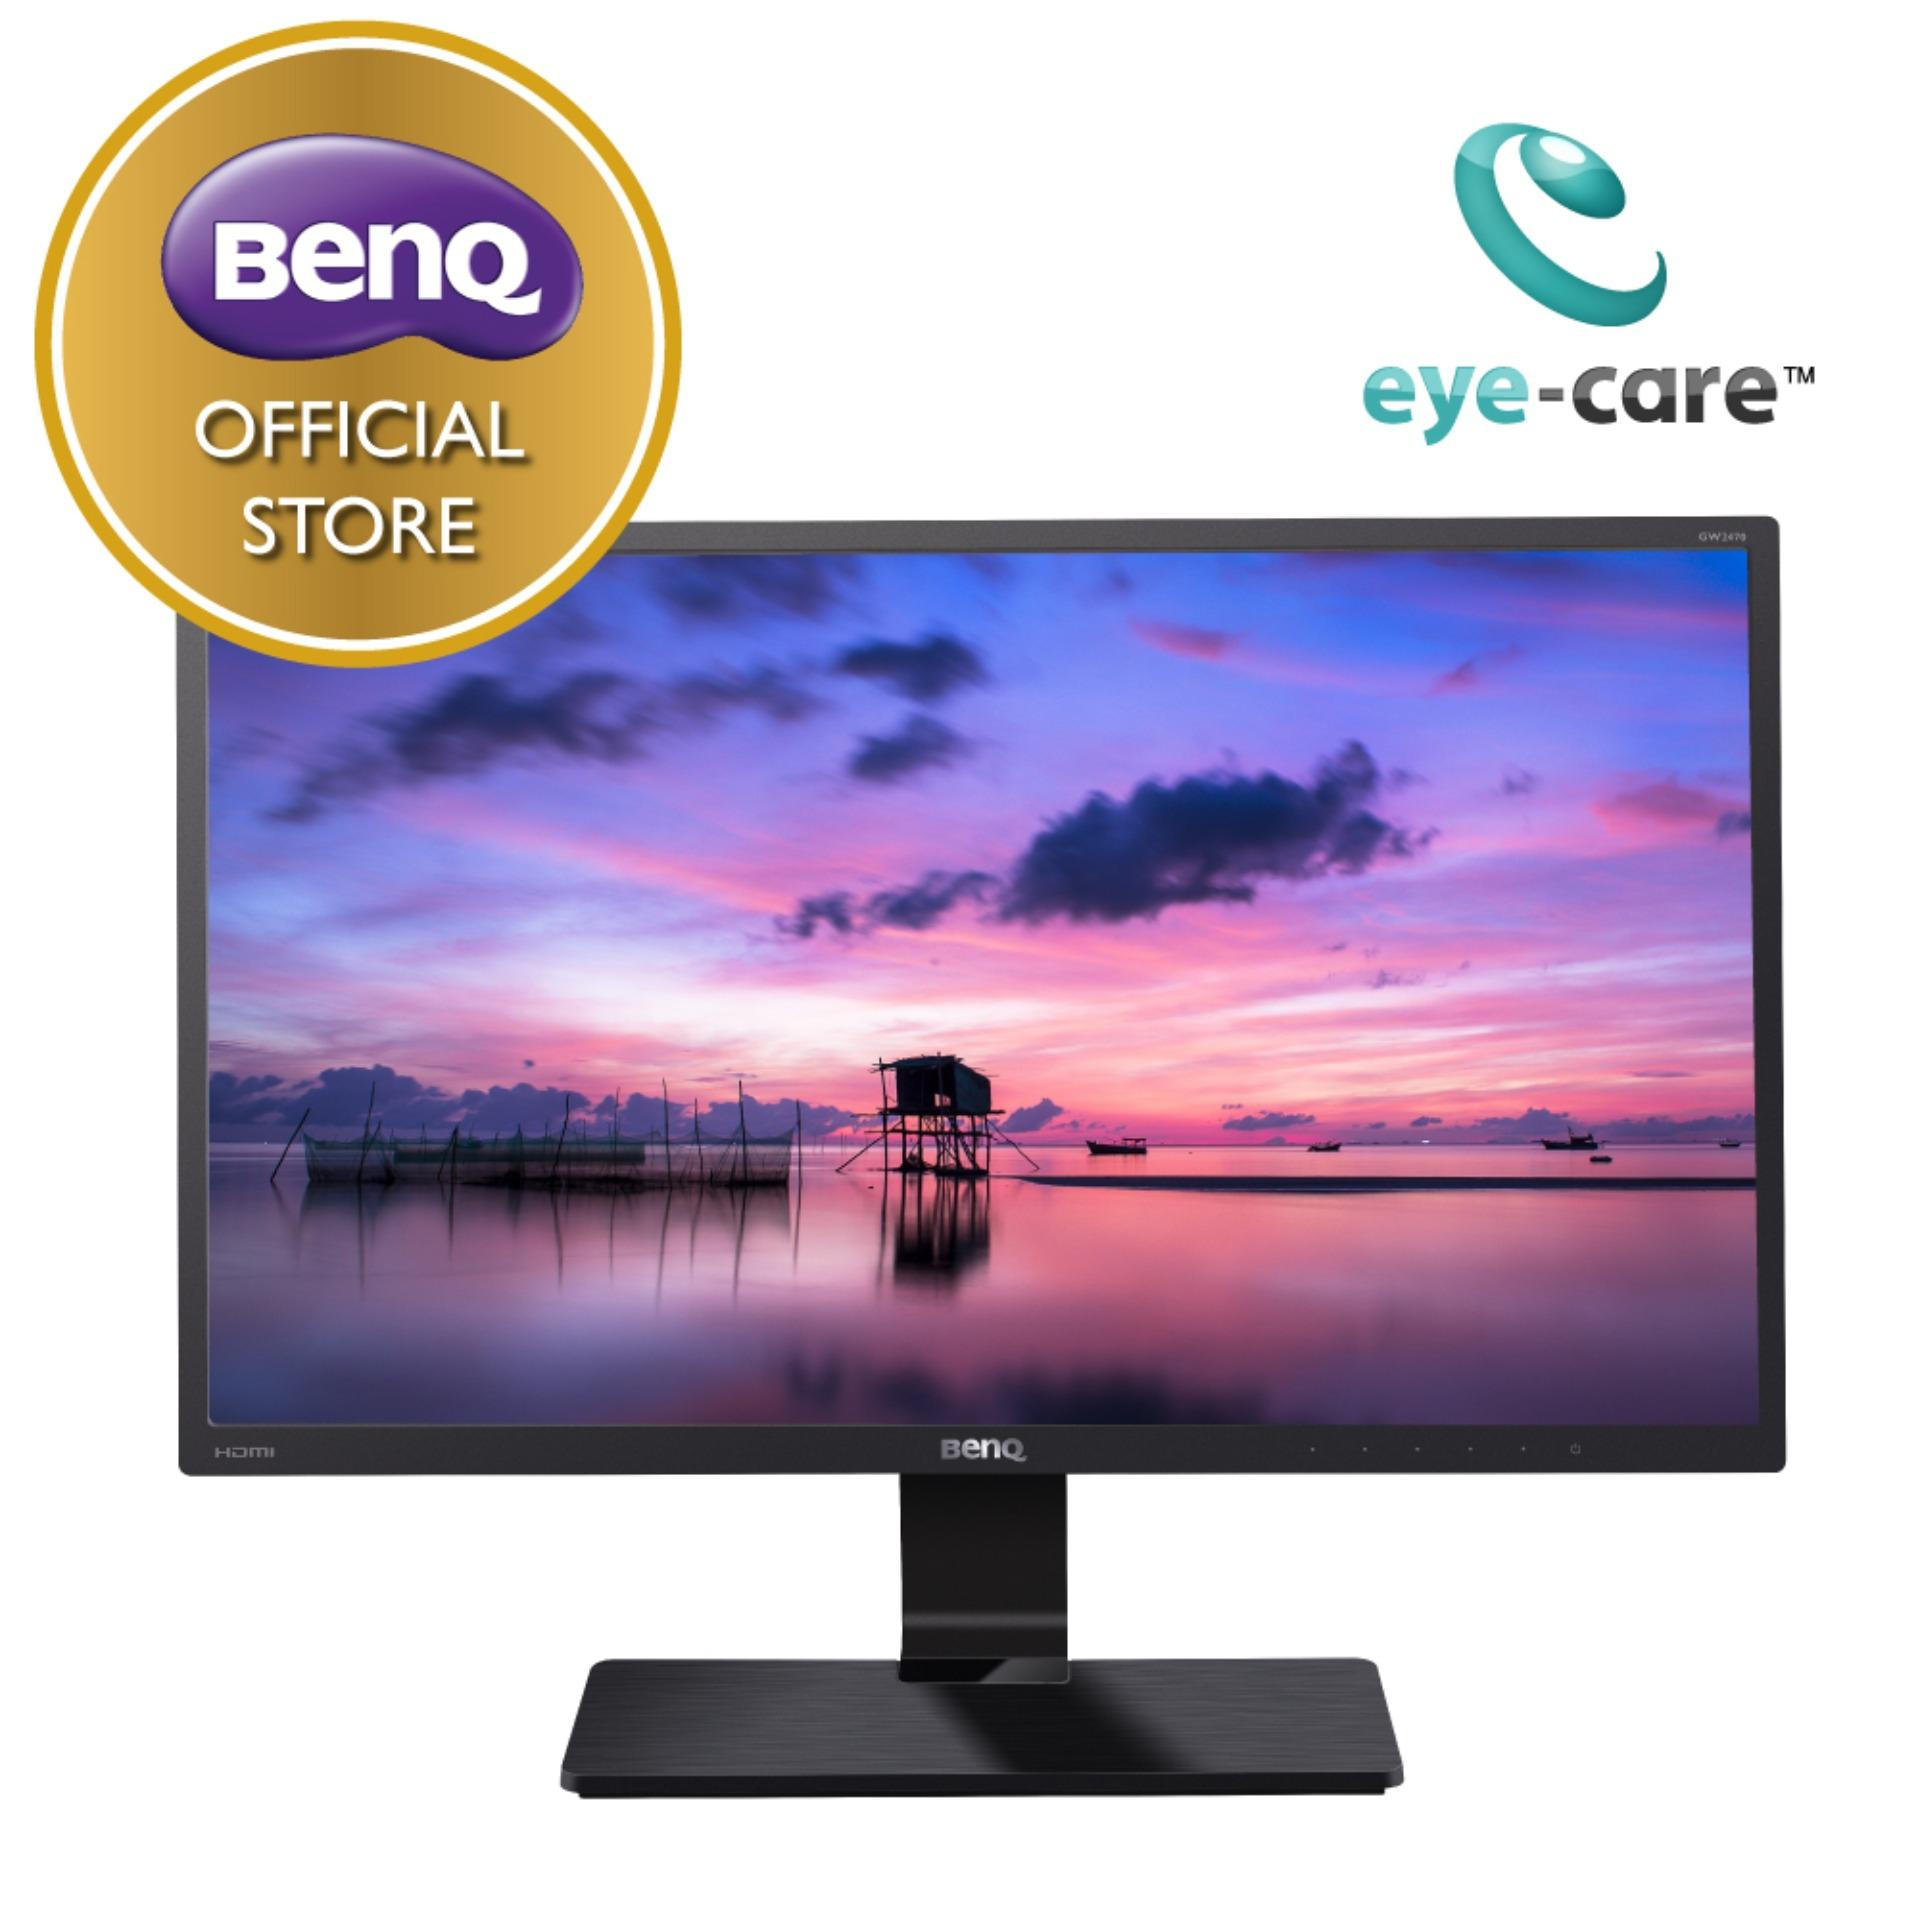 Spesifikasi Benq Gw2470H 24 Inch Full Hd Hdmi Va Led Eye Care Monitor Merk Benq